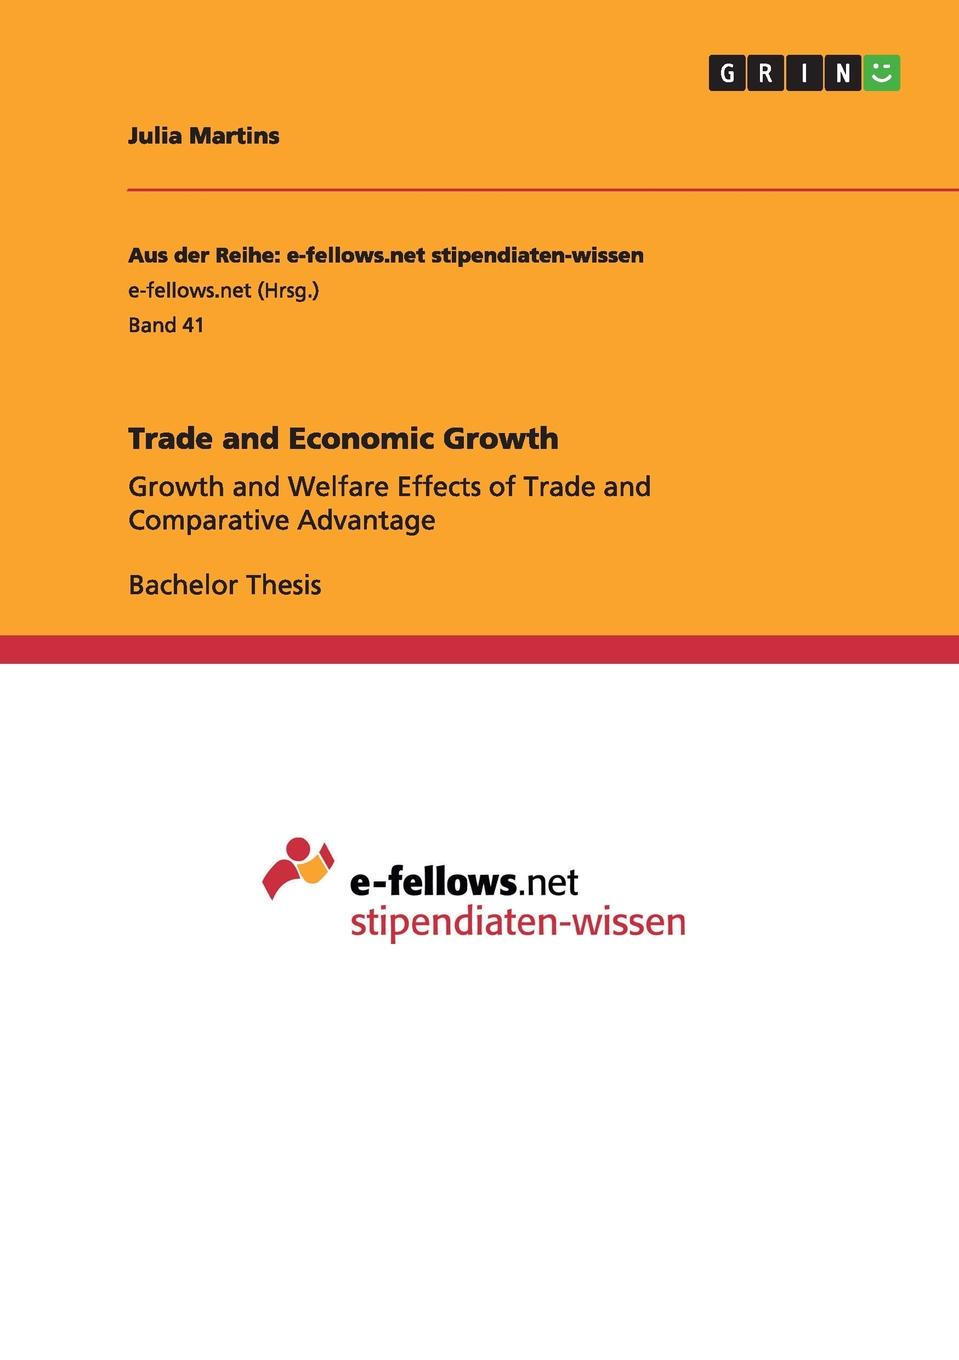 Julia Martins Trade and Economic Growth vishaal kishore ricardo s gauntlet economic fiction and the flawed case for free trade